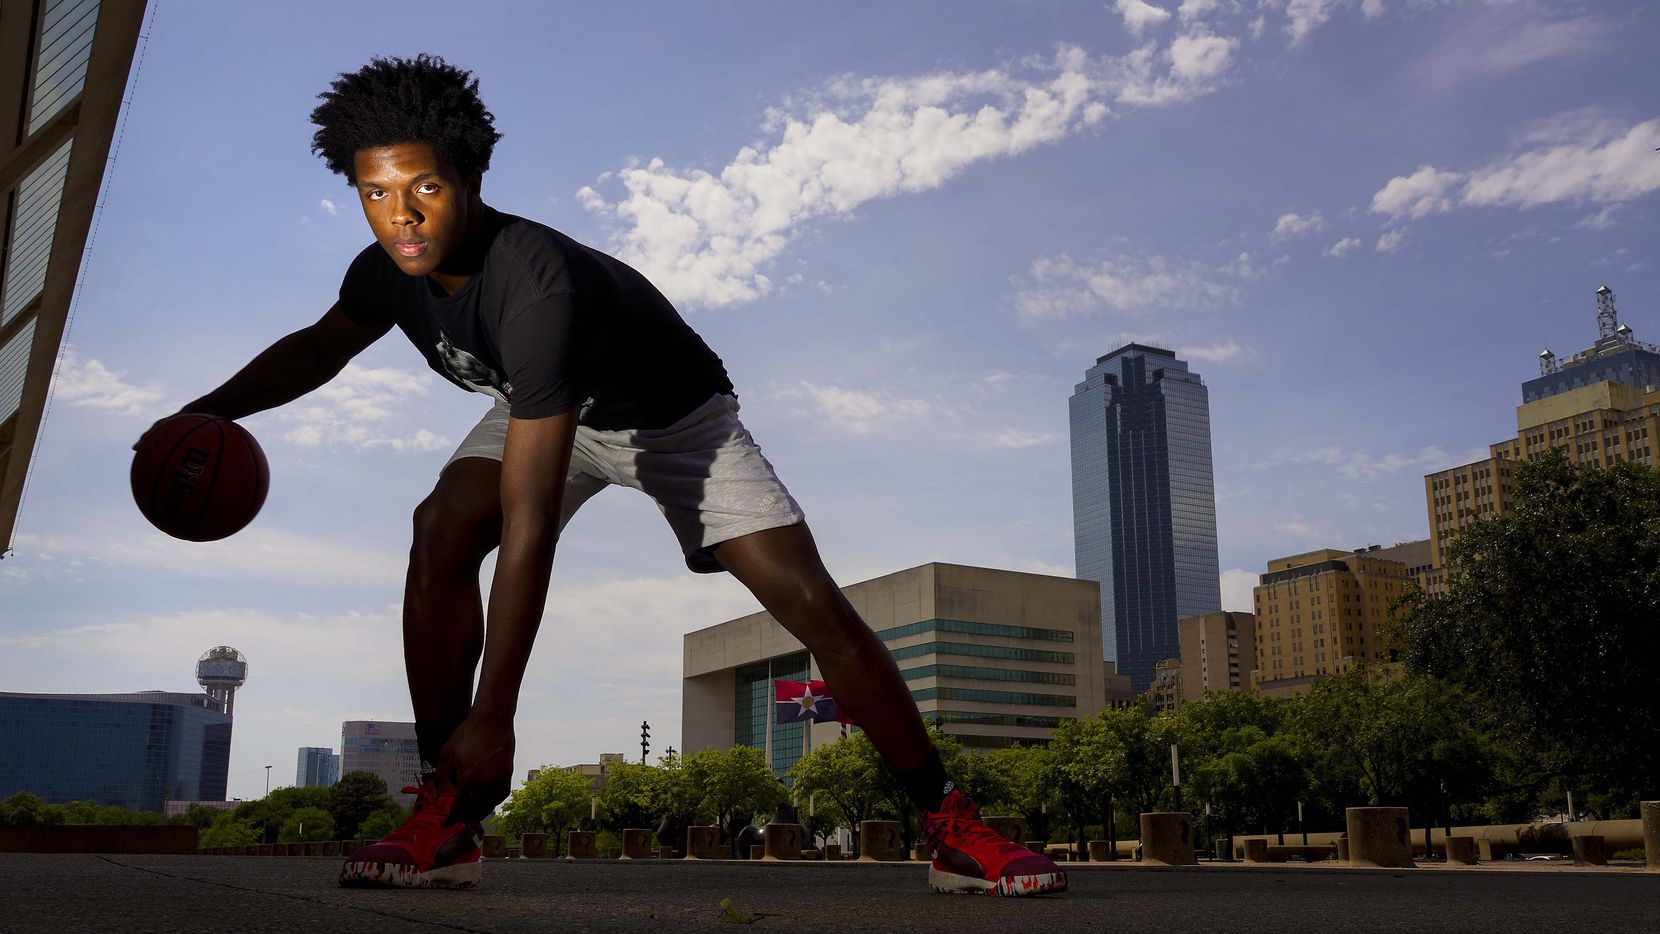 St. Mark's basketball player Harrison Ingram photographed on April 27, 2020 in Dallas.